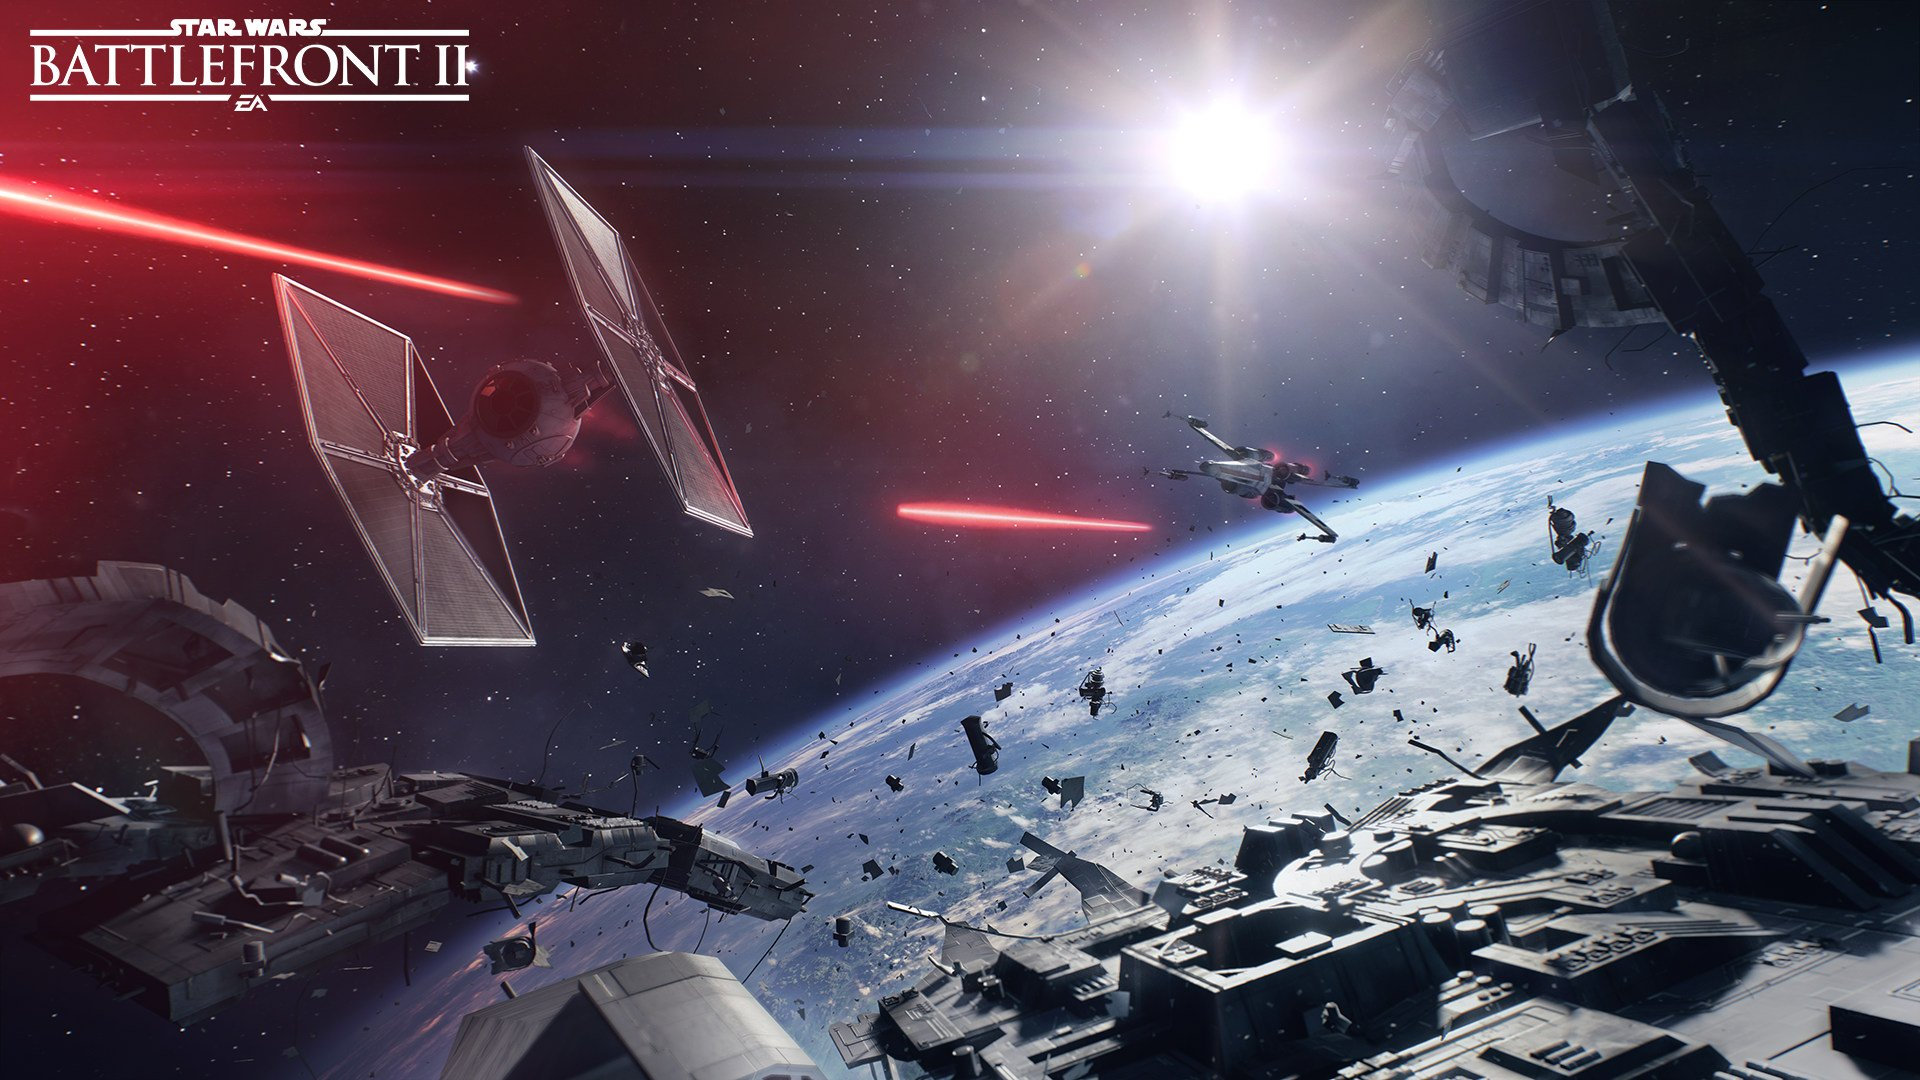 Latest Star Wars Battlefront II Video Goes Behind The Scenes On Shooter's Single-Player Mode